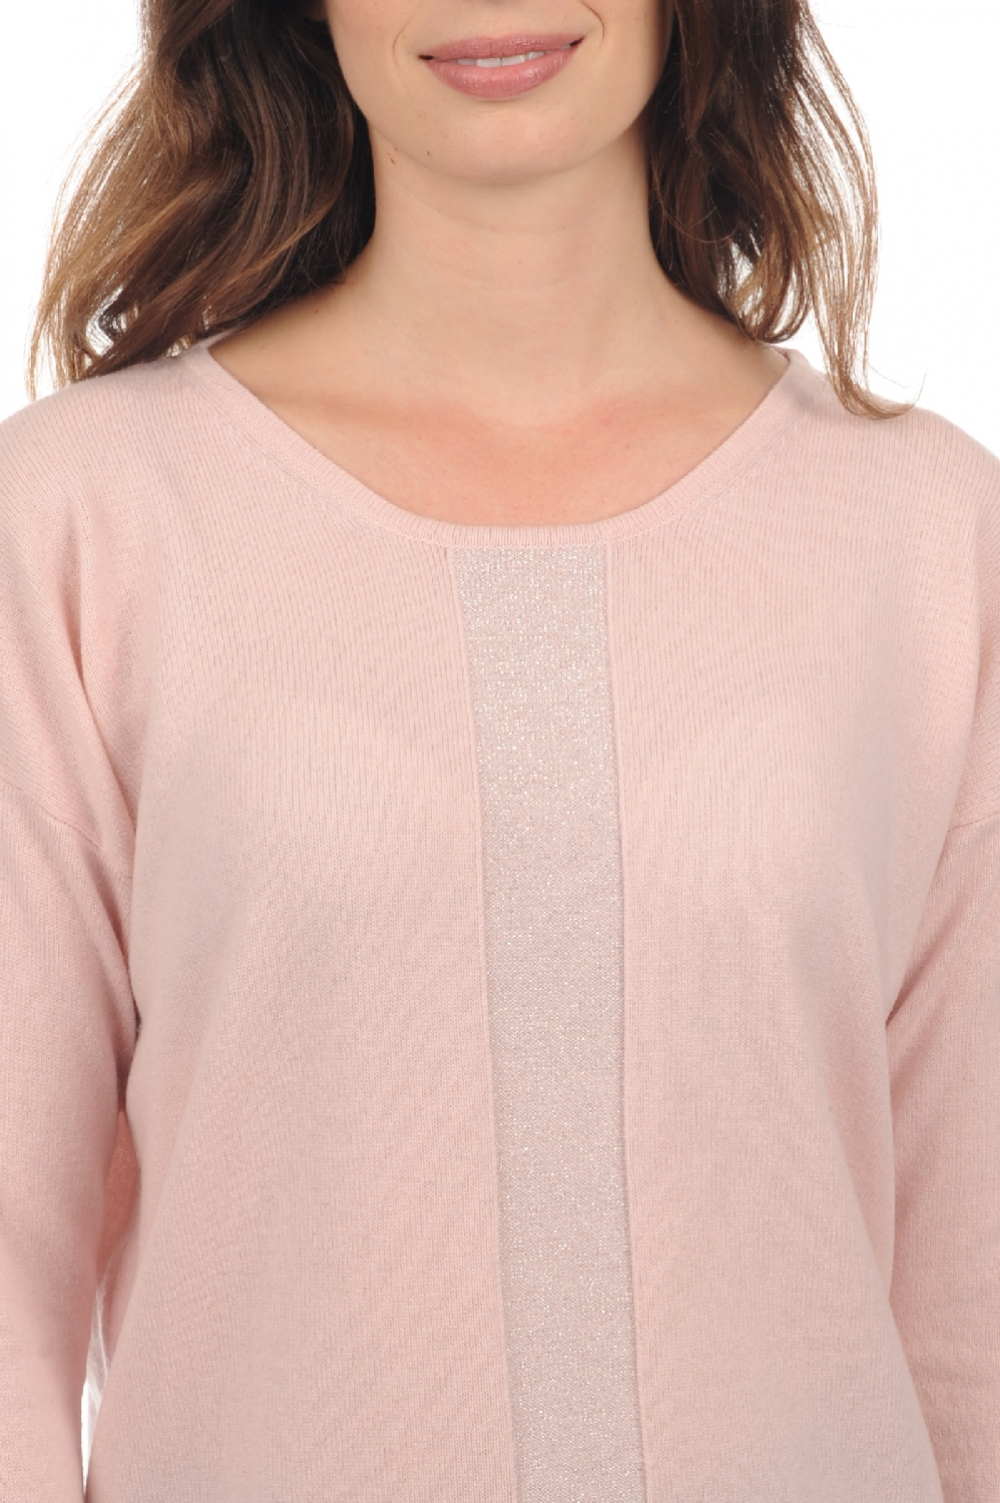 Cachemire pull femme col rond nymeria rose pale t1